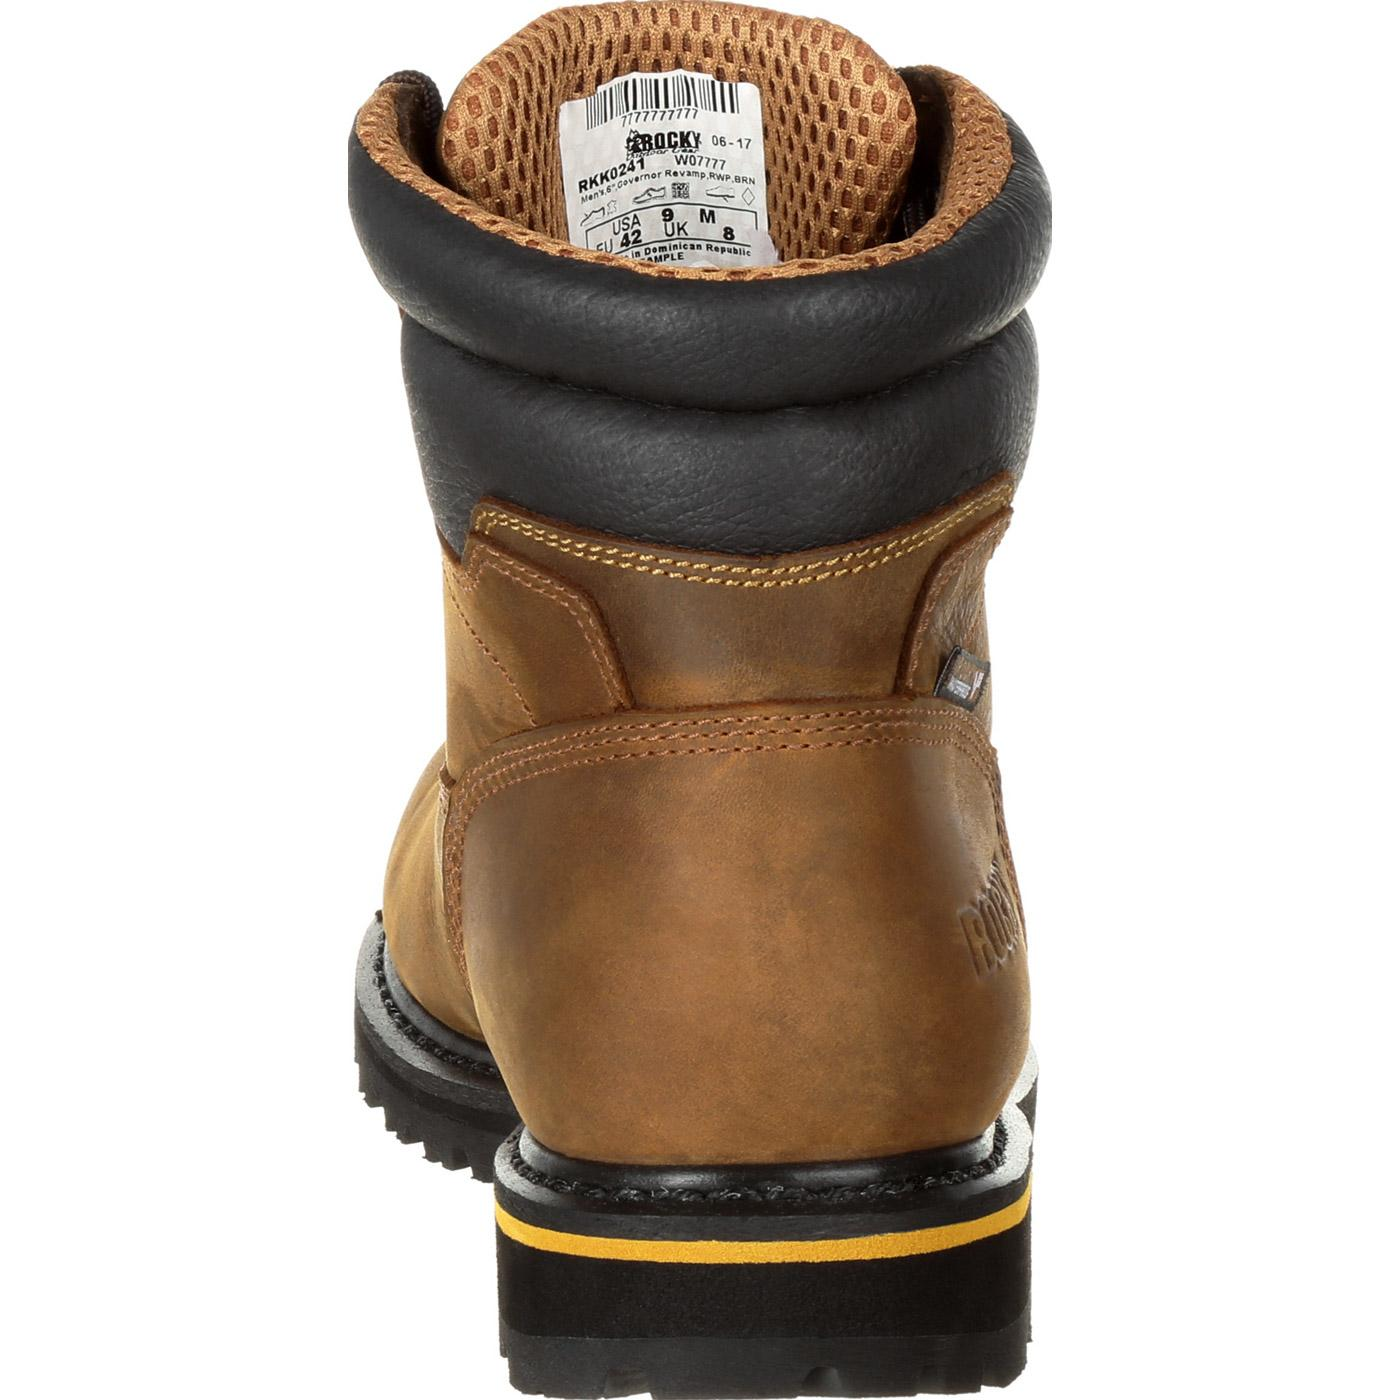 5c8e5d2f9a2 Rocky Governor Composite Toe Waterproof 6 Inch Work Boot